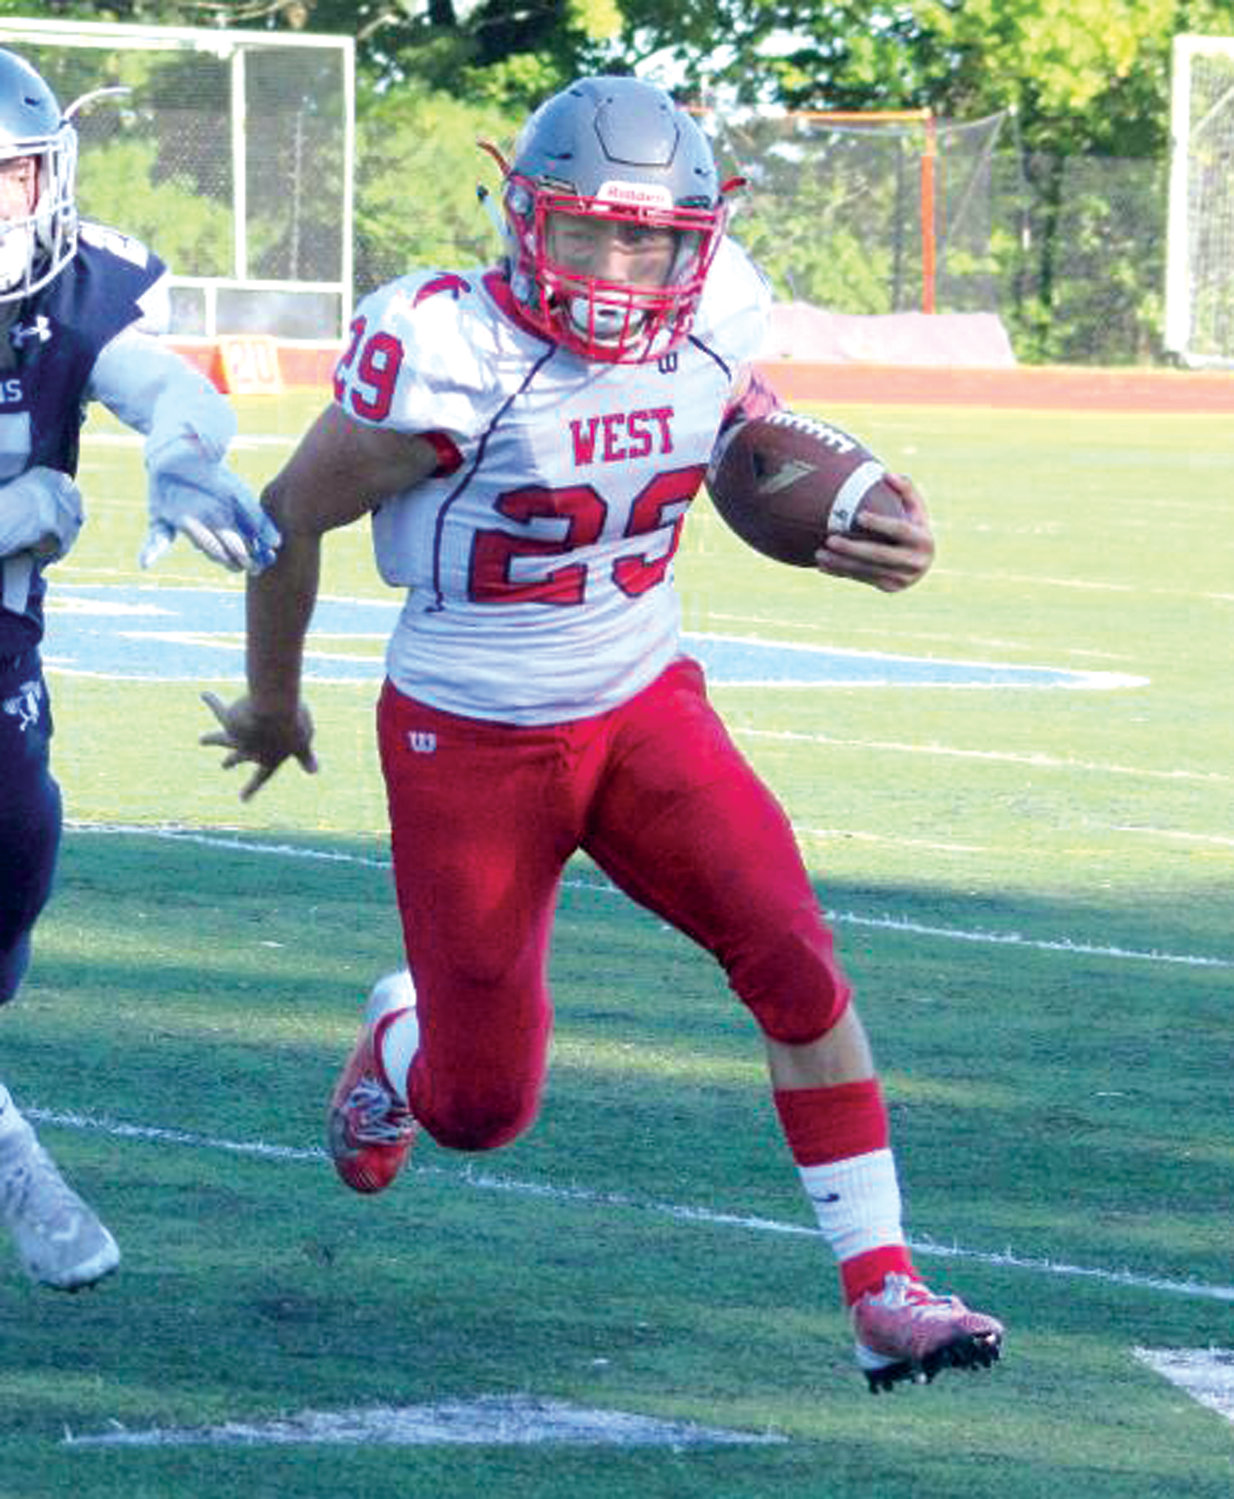 MOVING THE CHAINS: Cranston West's Brennan Stetson picks up some yards against Moses Brown.